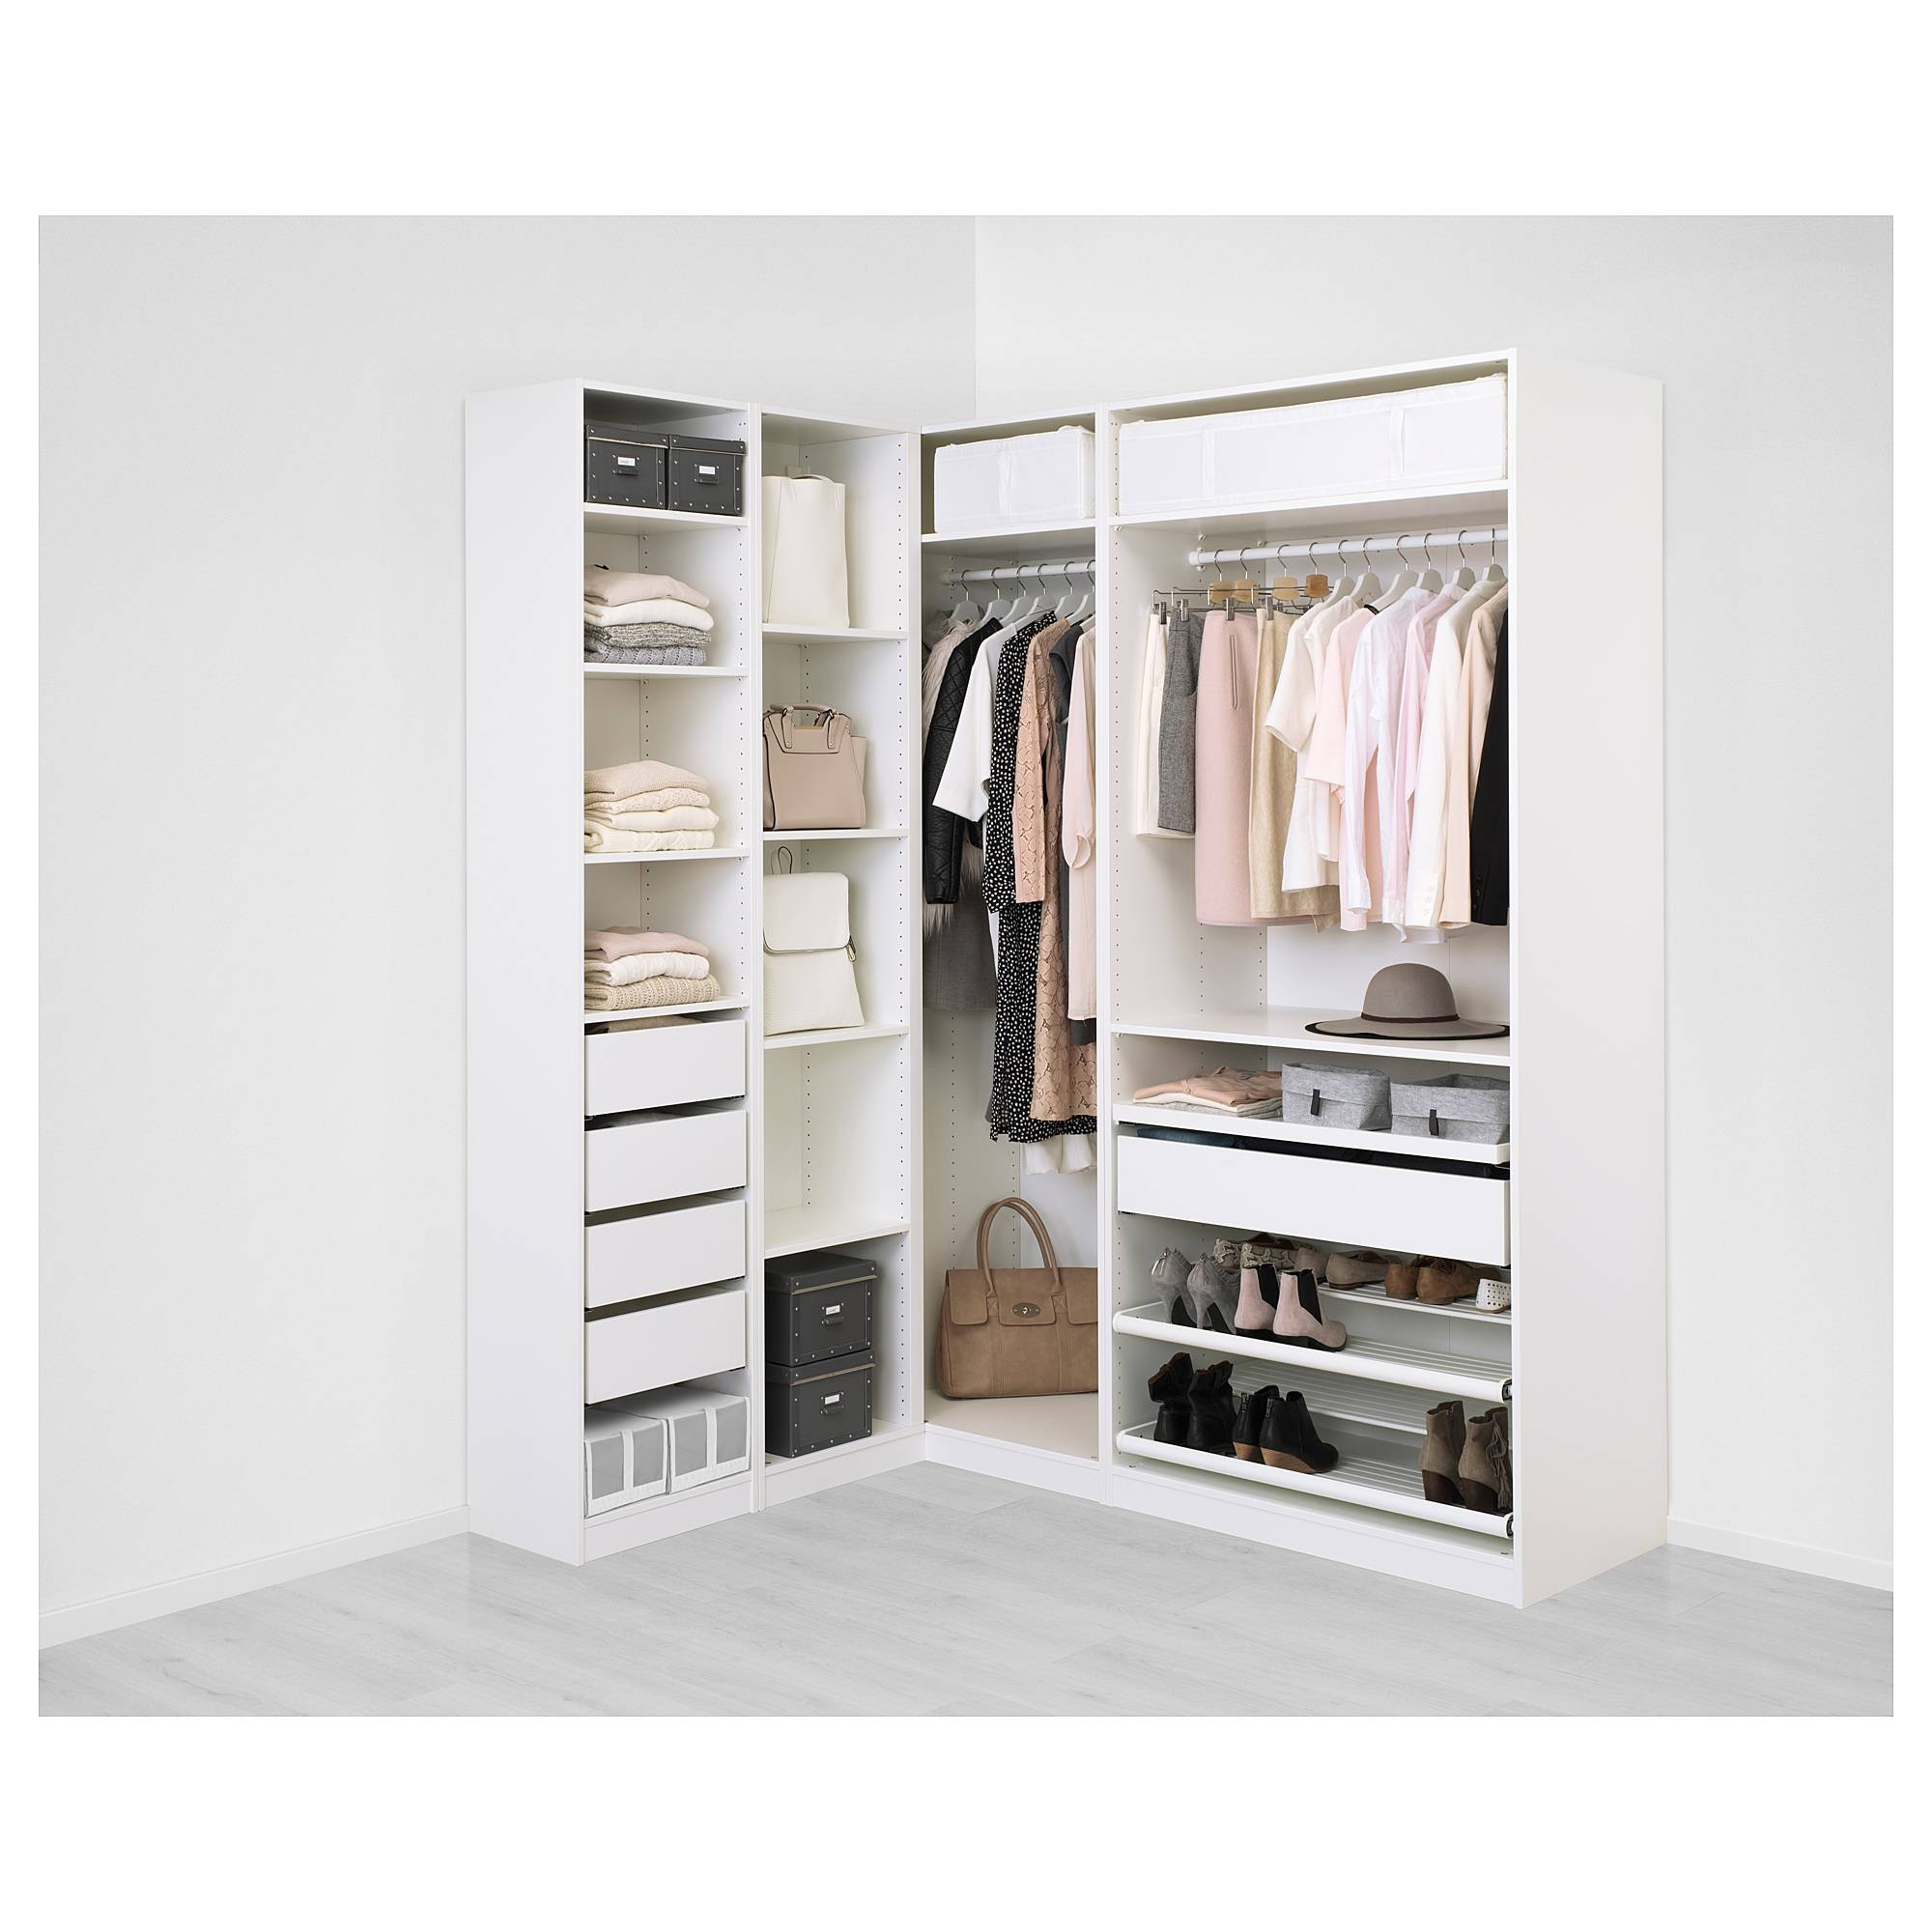 Pax Corner Wardrobe White/flisberget Light Beige 160/188X236 Cm - Ikea for White Corner Wardrobes (Image 10 of 15)